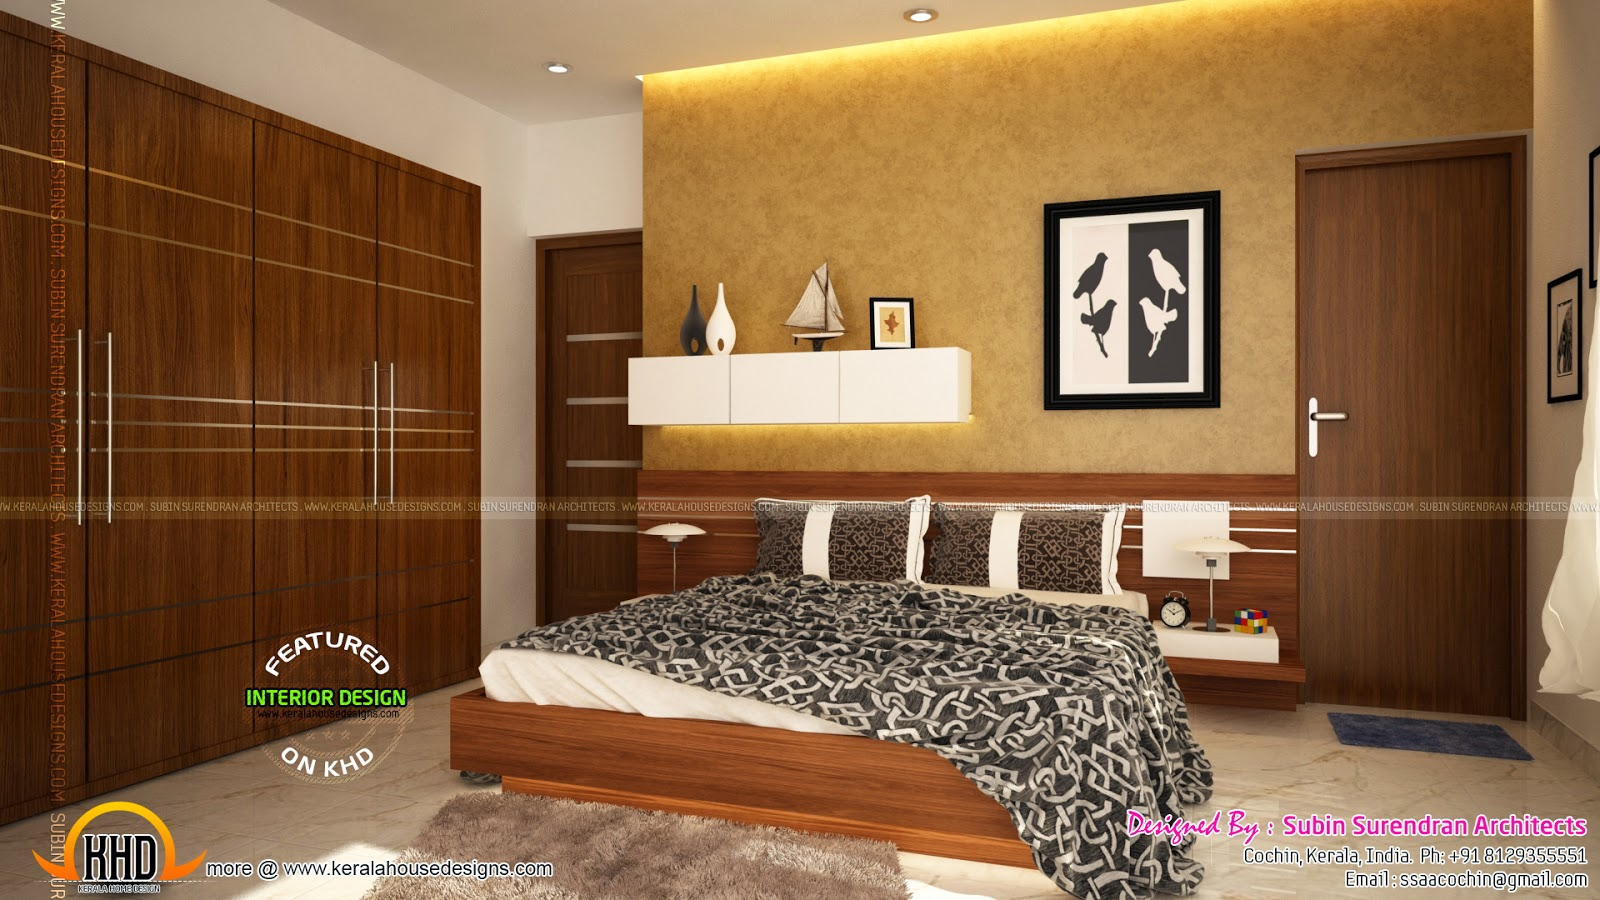 Kerala style low cost double storied home keralahousedesigns for Interior design styles master bedroom